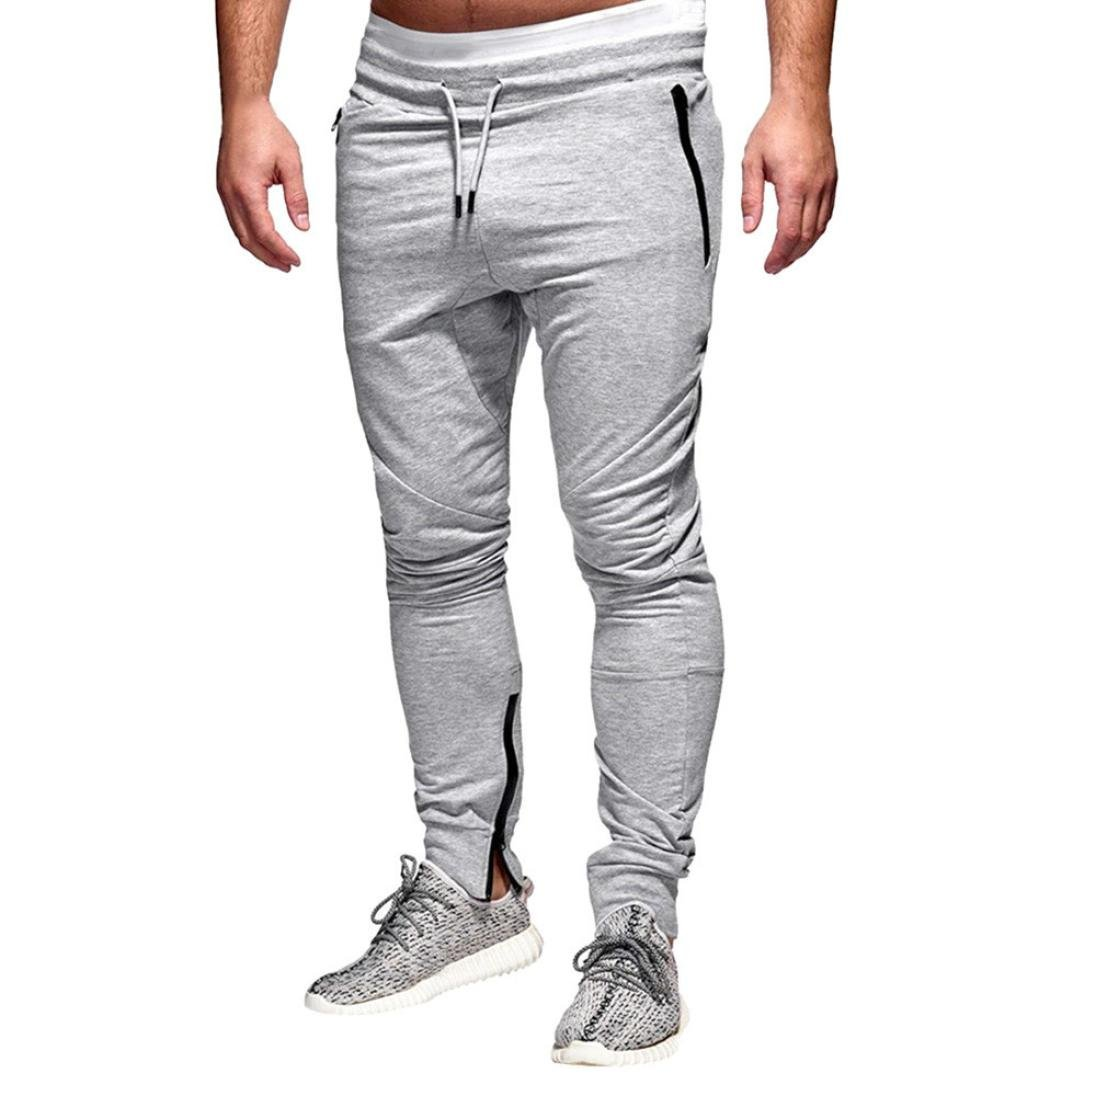 c224885bfc2411 Novelty & More Allywit Men Jogger Pant Sweatpant Sports Running Closed  Bottom Sweatpant Workout Athletic